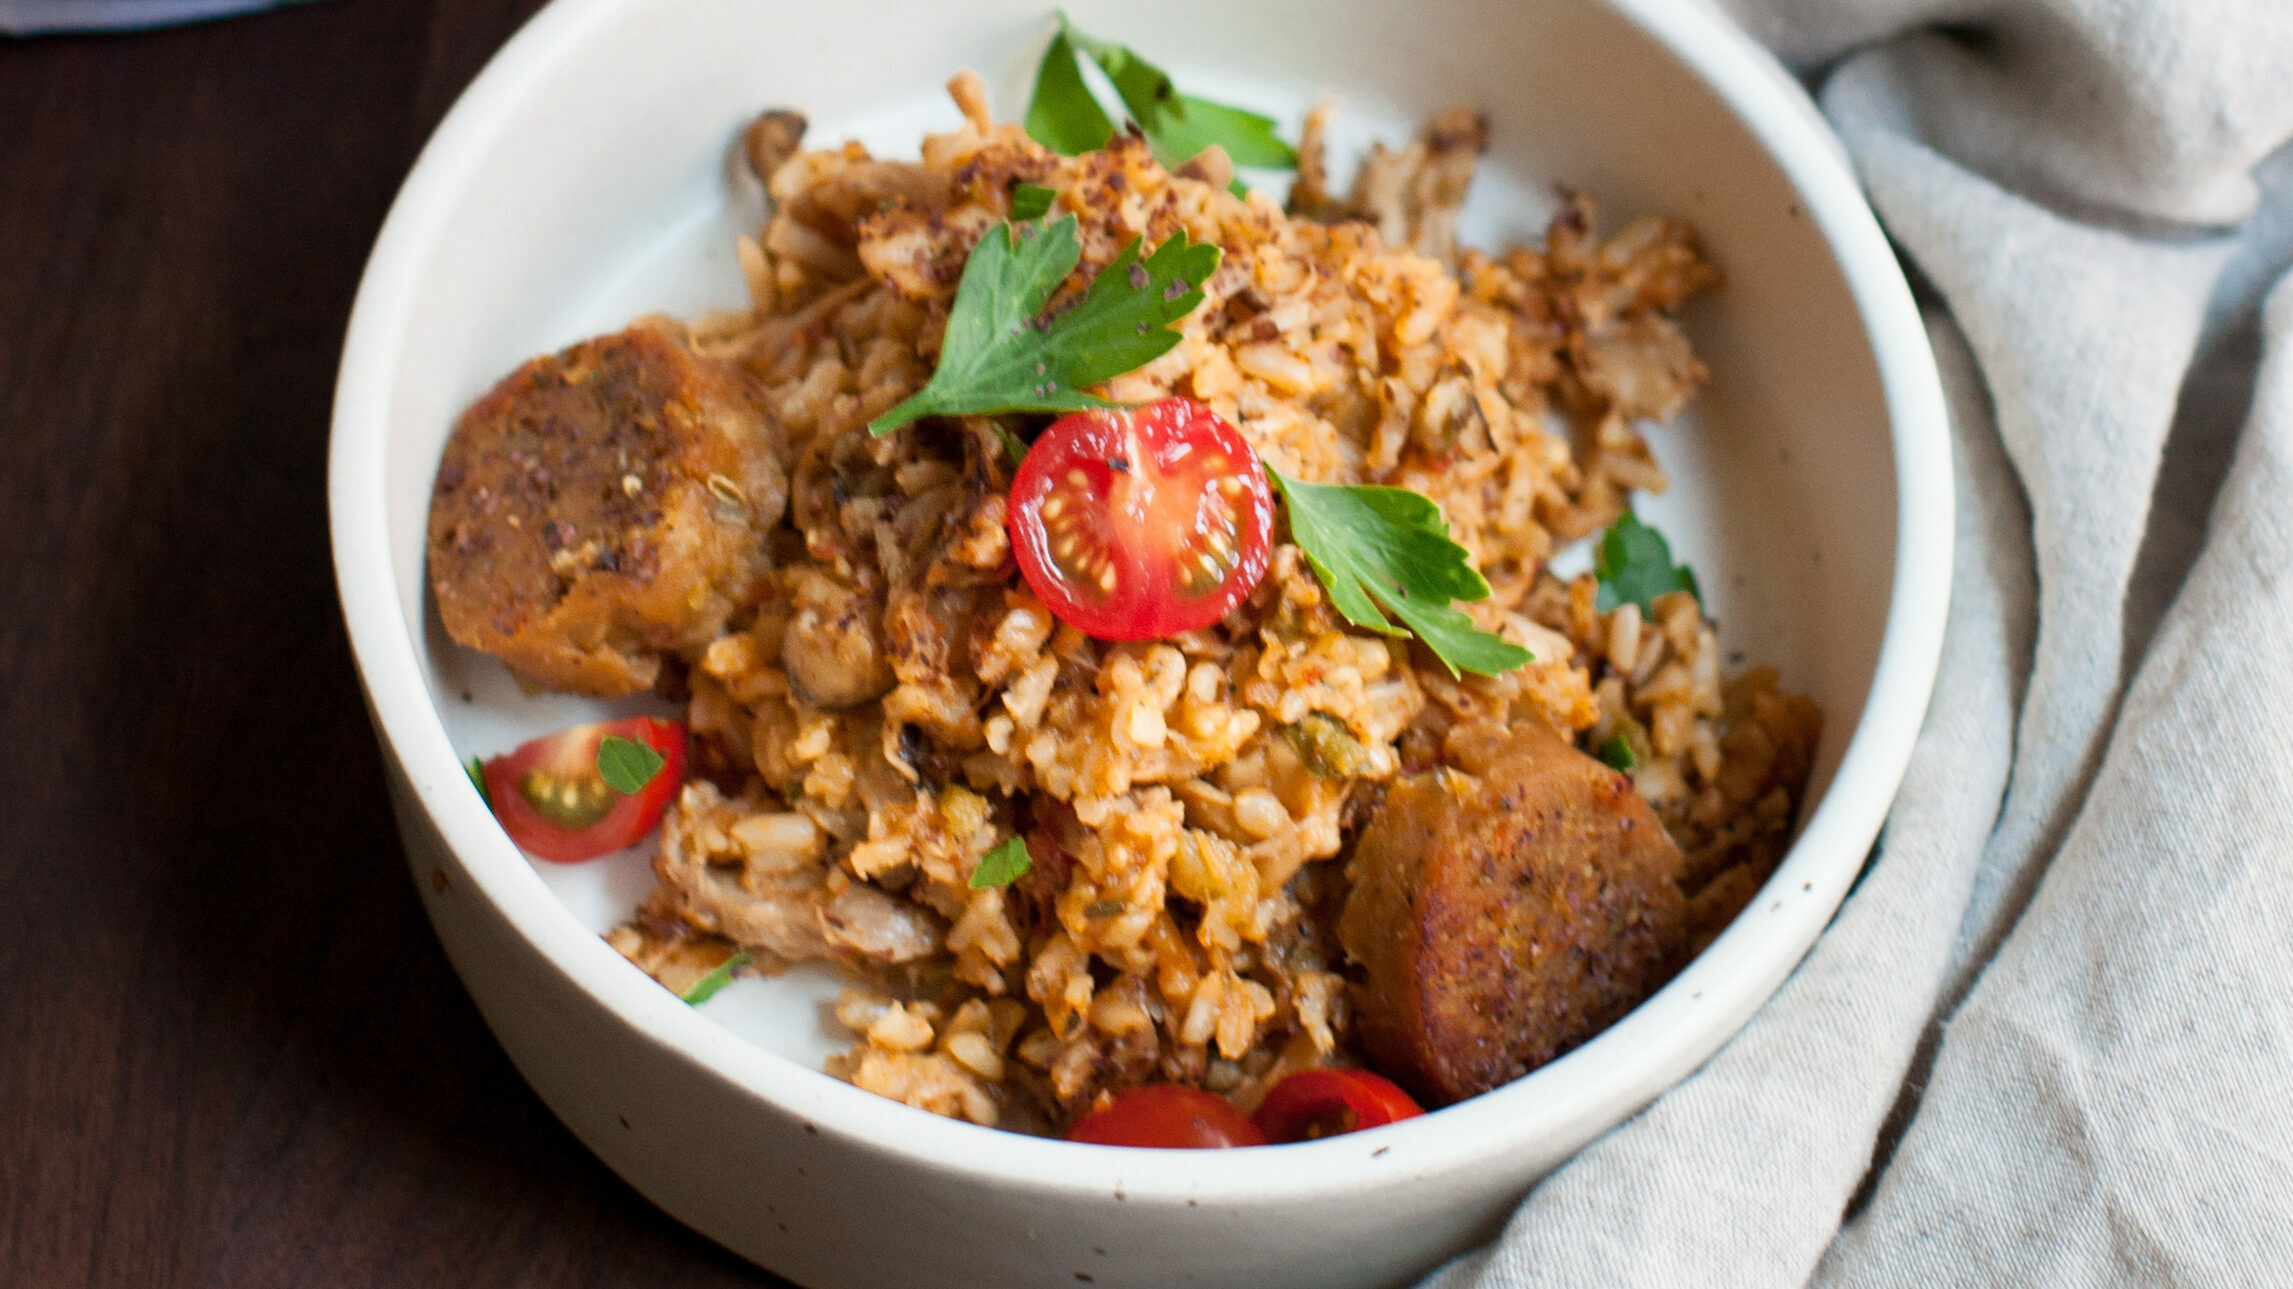 Mushroom and Sausage Jambalaya in bowl